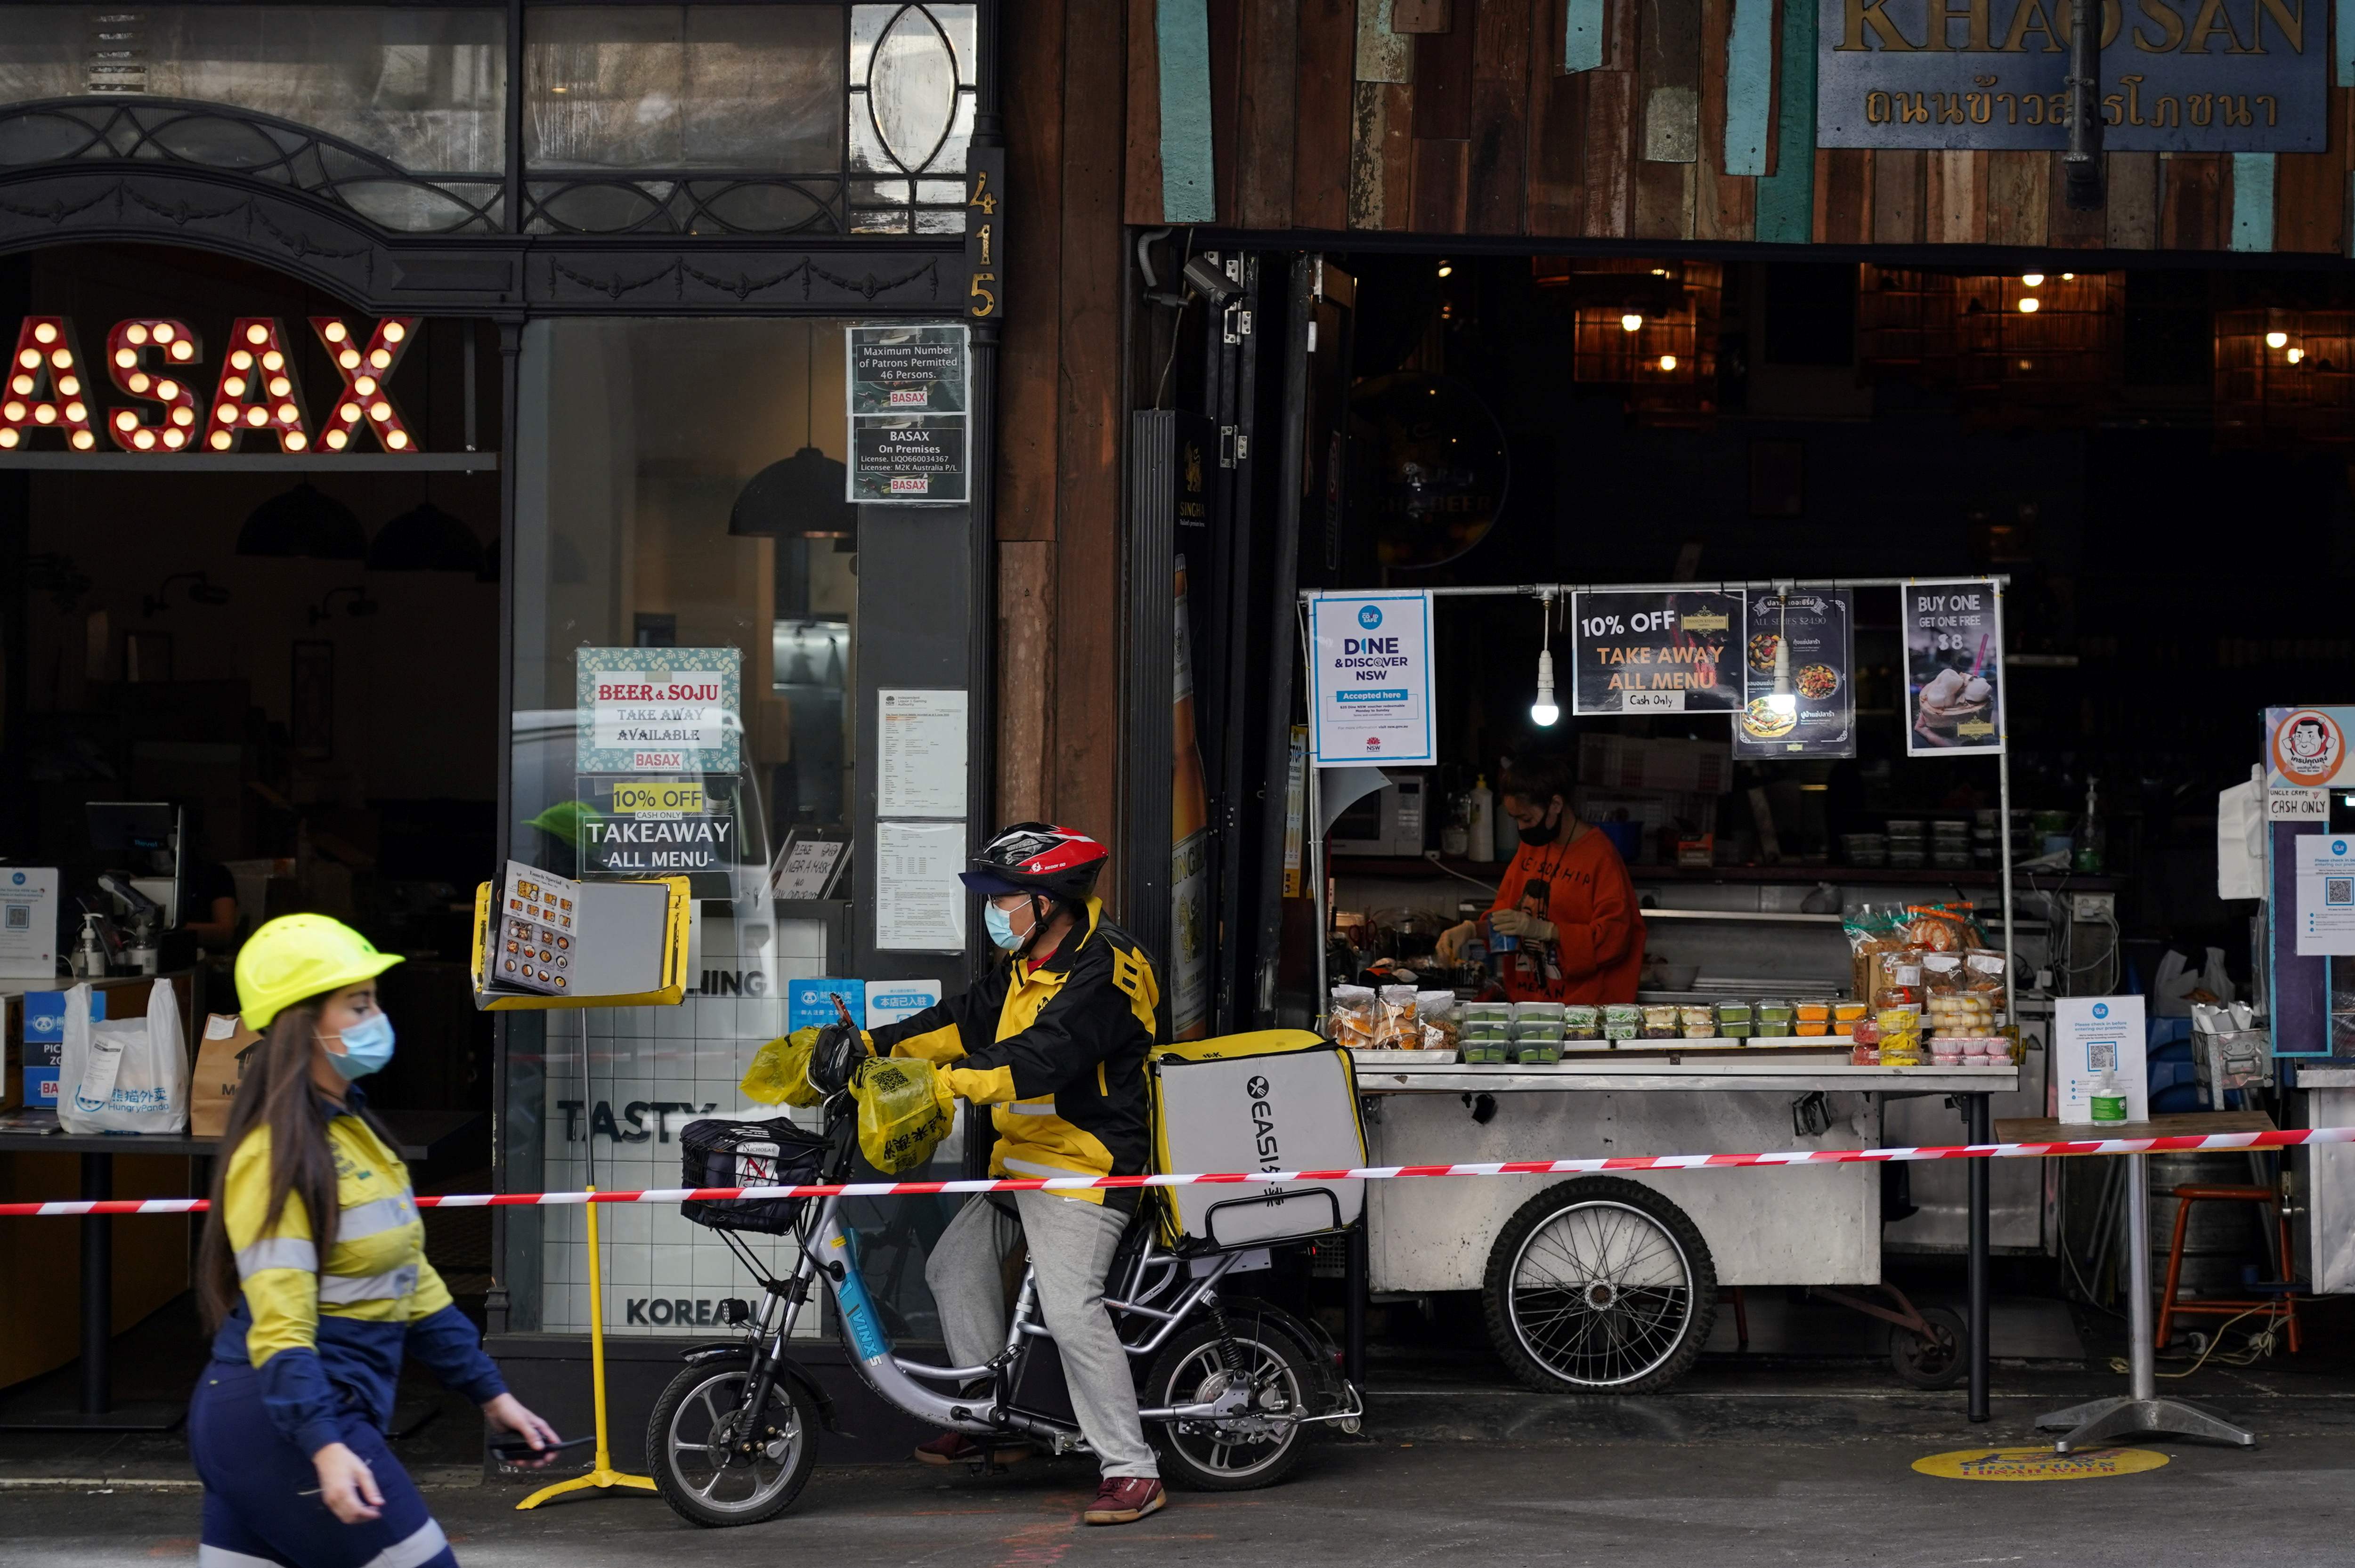 (From L) A construction worker, delivery courier and restaurant staff wear protective face masks while working in the city centre during a lockdown to curb the spread of a coronavirus disease (COVID-19) outbreak in Sydney, Australia, September 9, 2021.  REUTERS/Loren Elliott